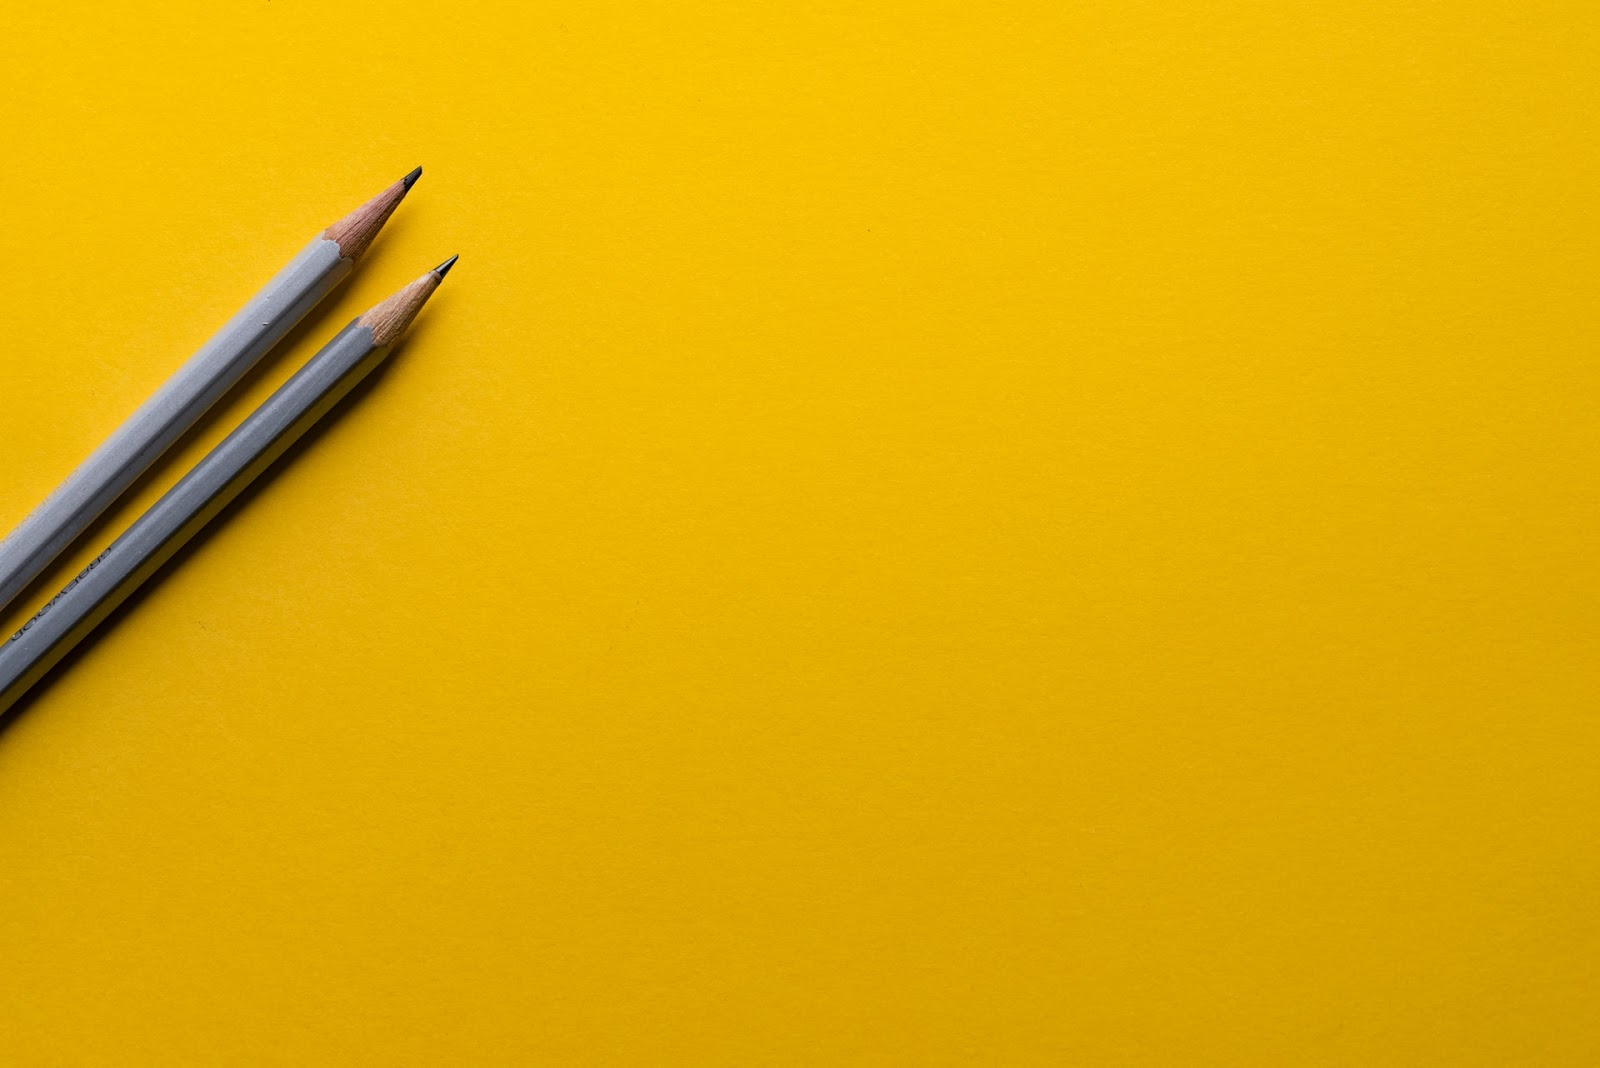 Two pencils on yellow paper. Creating a content calendar is essential to any good content strategy for bloggers.